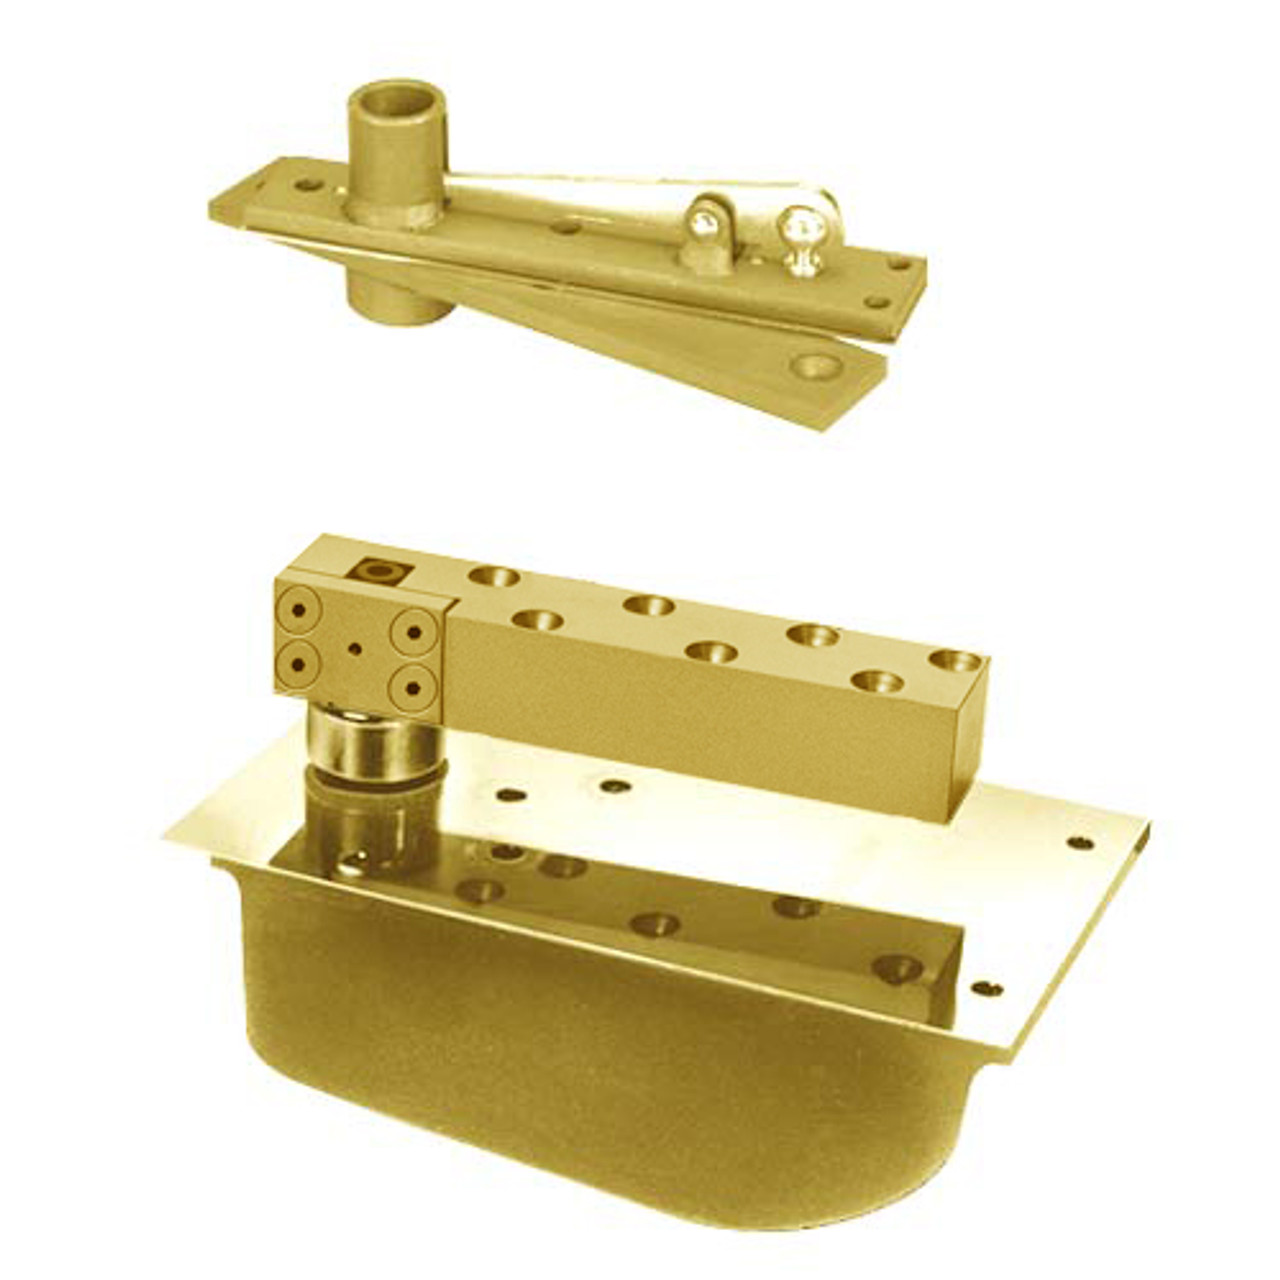 PHH28-90S-587-RH-606 Rixson 28 Series Extra Heavy Duty Single Acting Center Hung Concealed Floor Closer in Satin Brass Finish